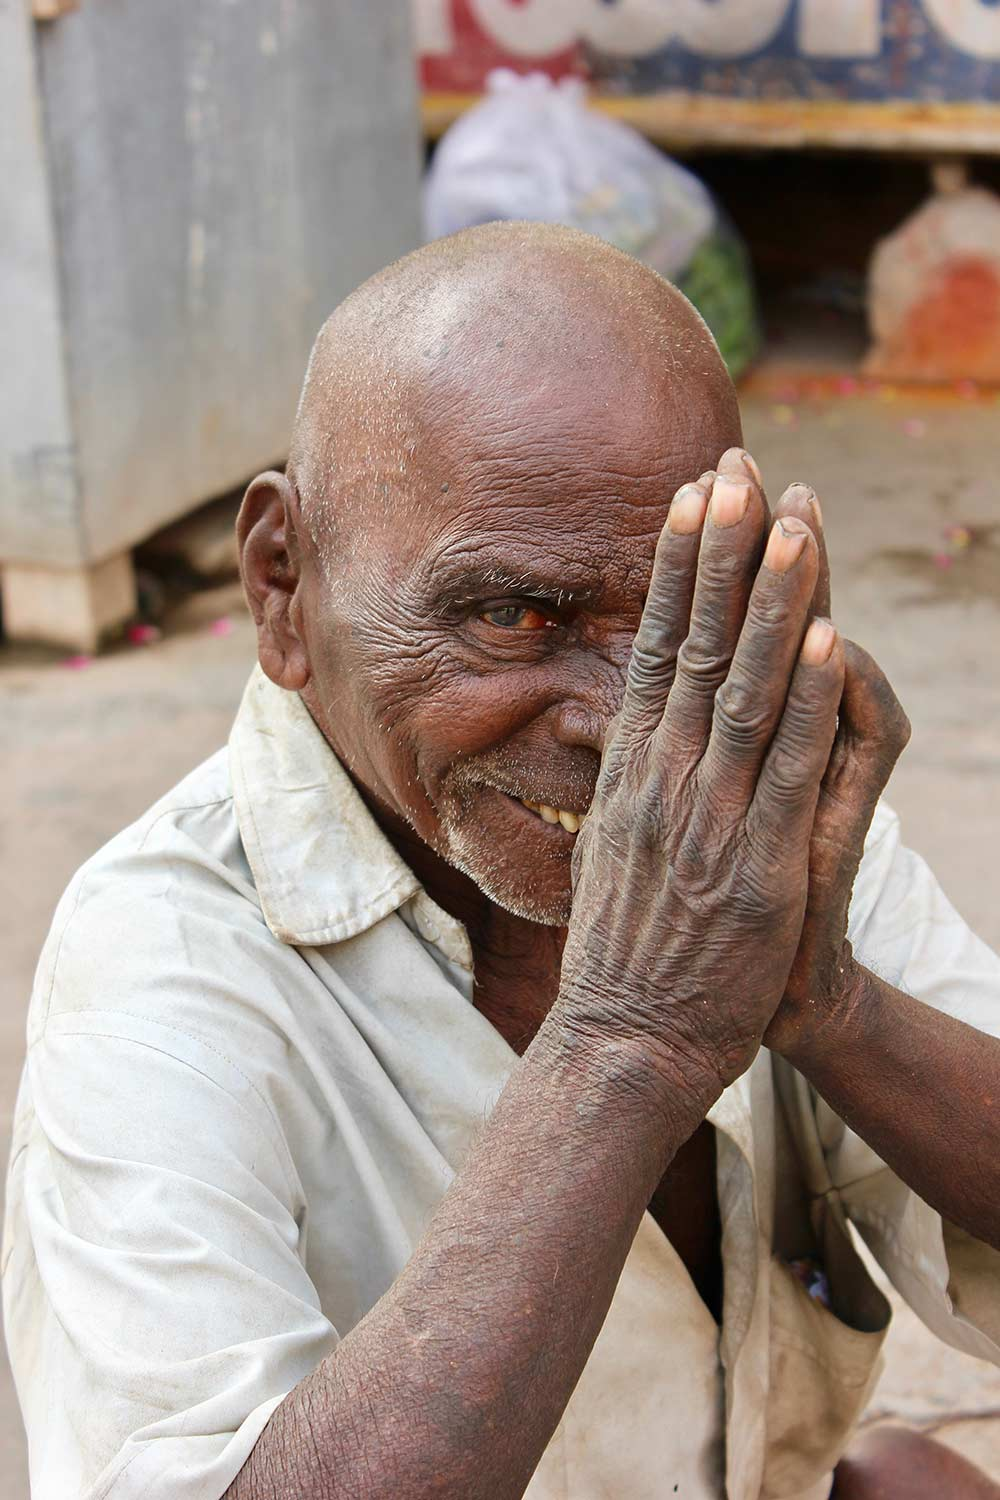 A man praying outside a Hindu temple in India